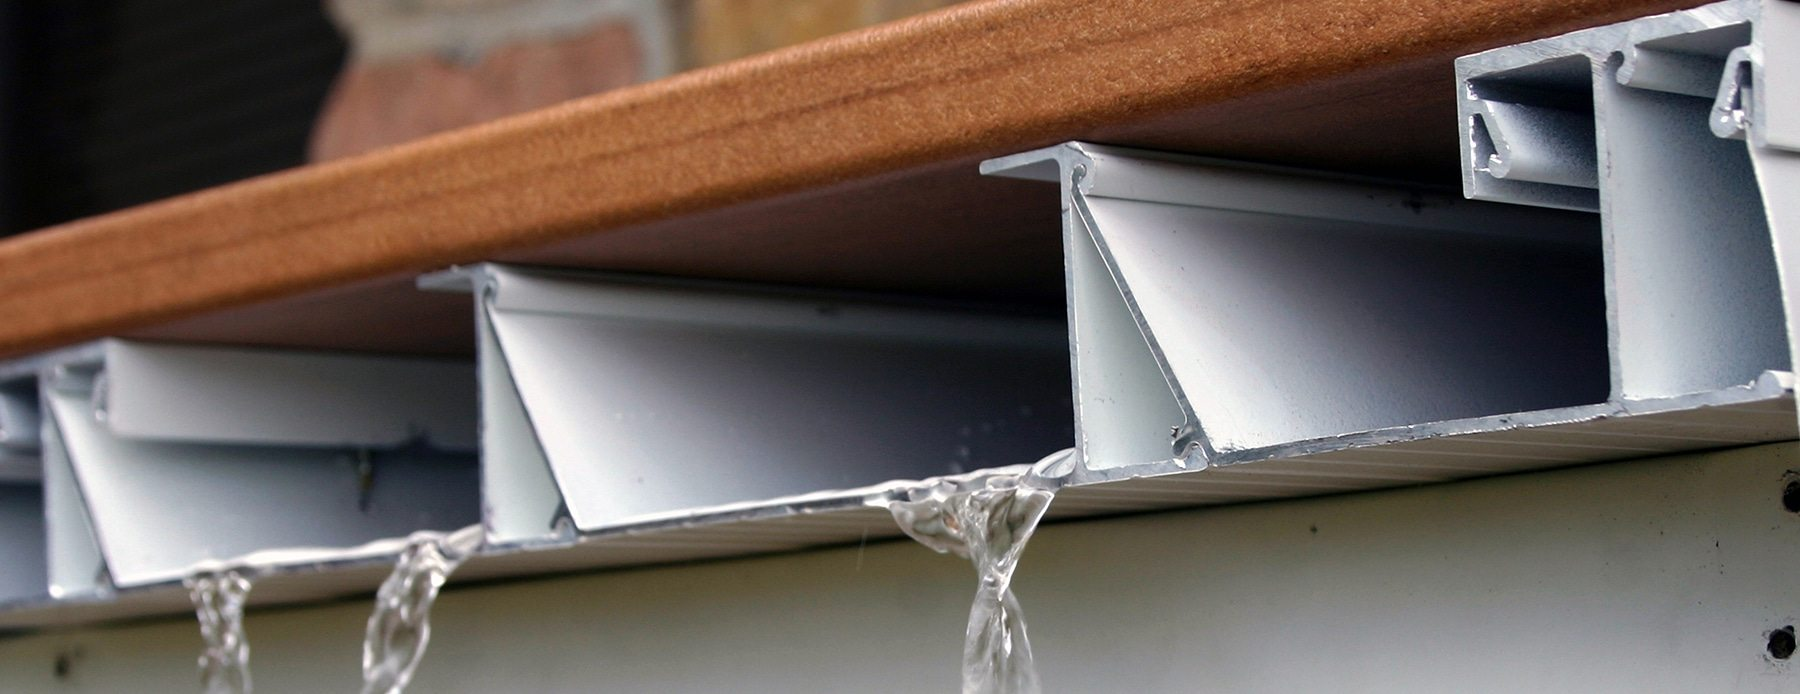 Does Your Dream Deck Design Include A Dry Under Deck Area? Then You Need  One Of Our Aluminum Waterproof Decking Systems.